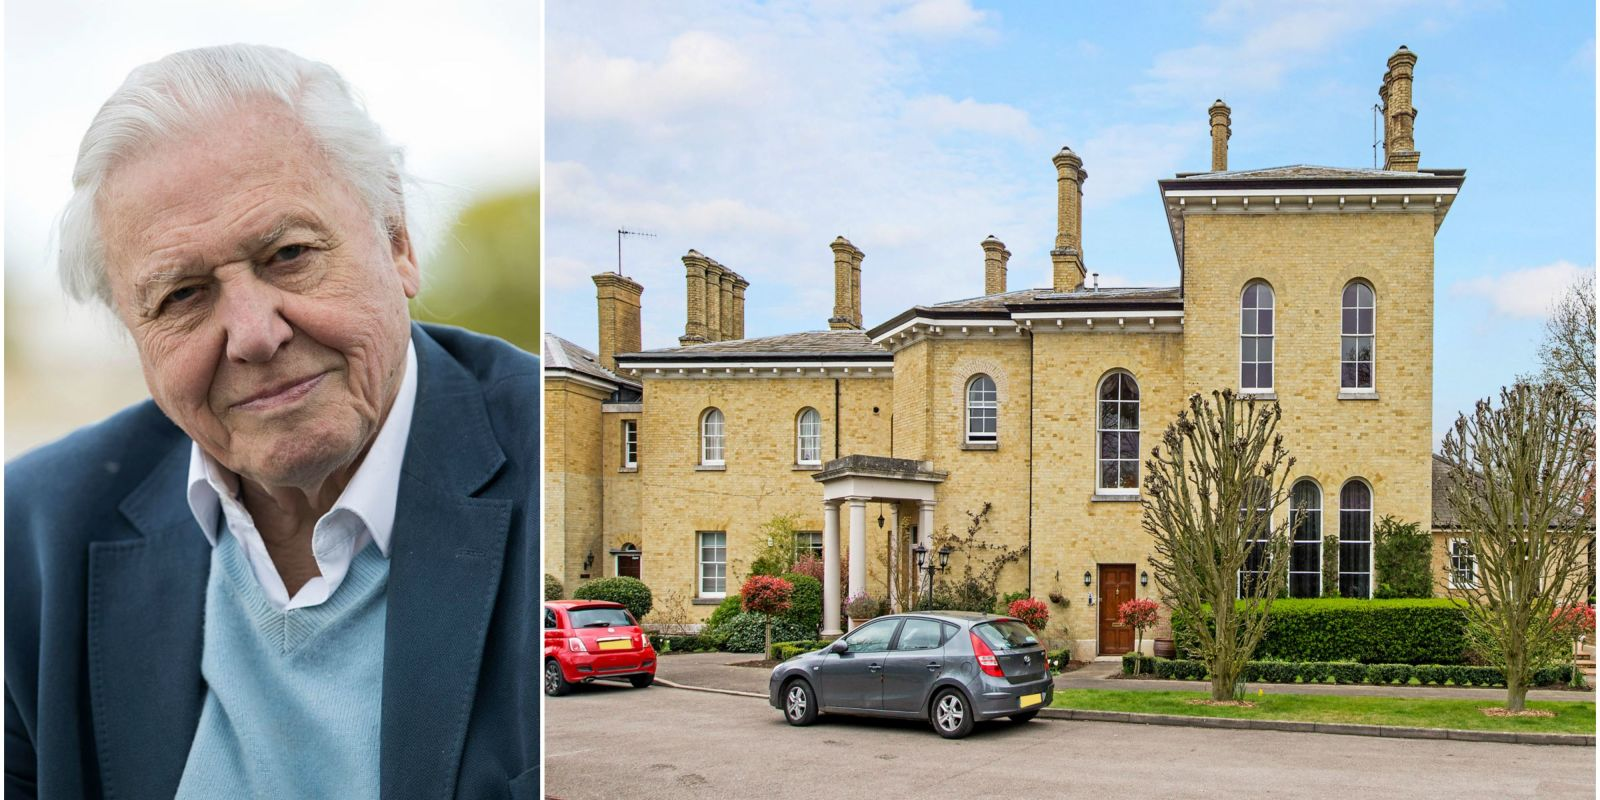 Sir David Attenborough 39 S Family Mansion Converted Into